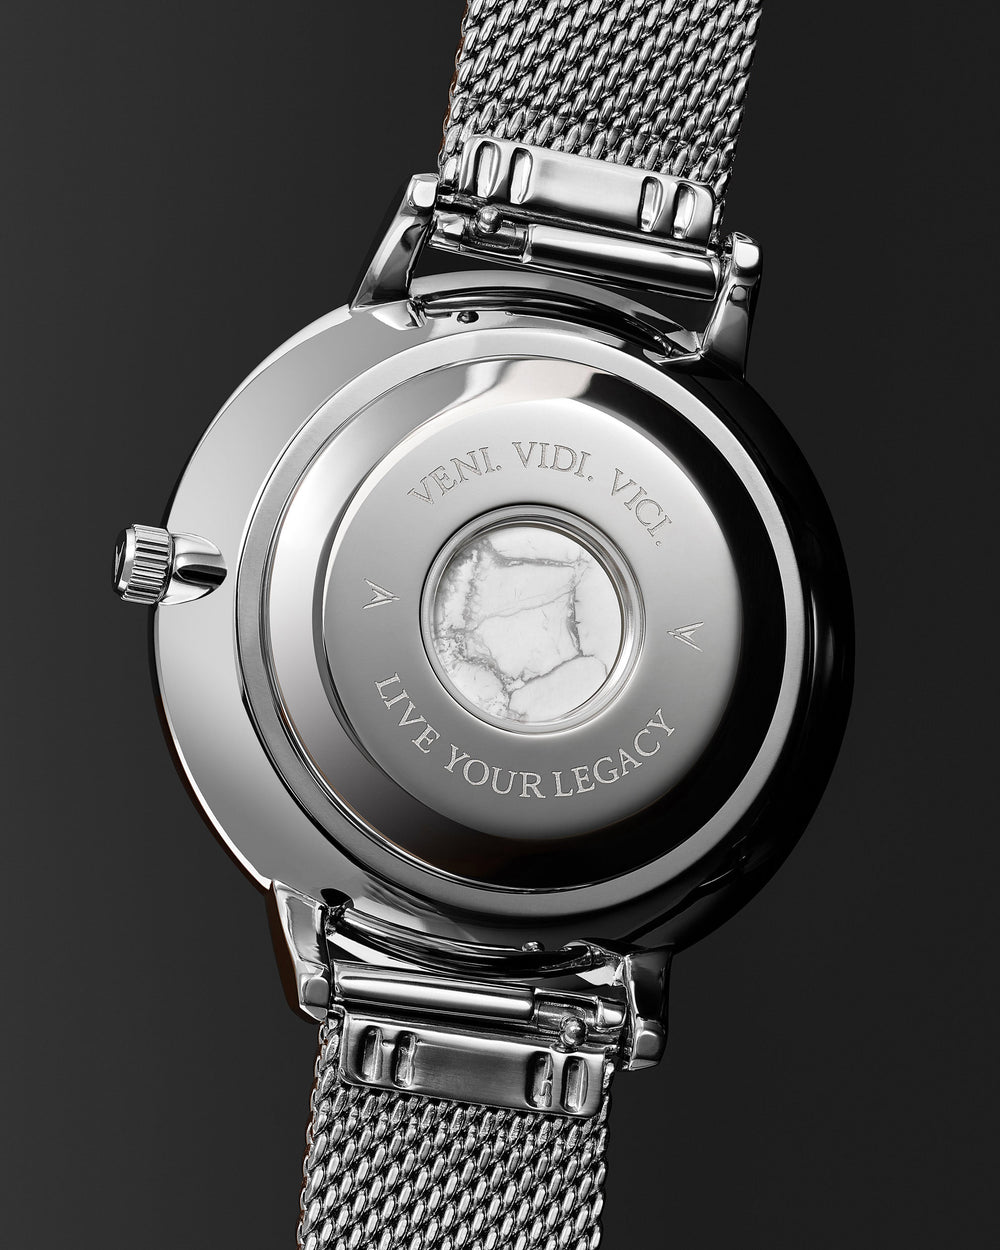 Eros 20mm Italian Marble and 316L Stainless Steel Caseback with Veni Vidi Vici Live Your Legacy Engraving